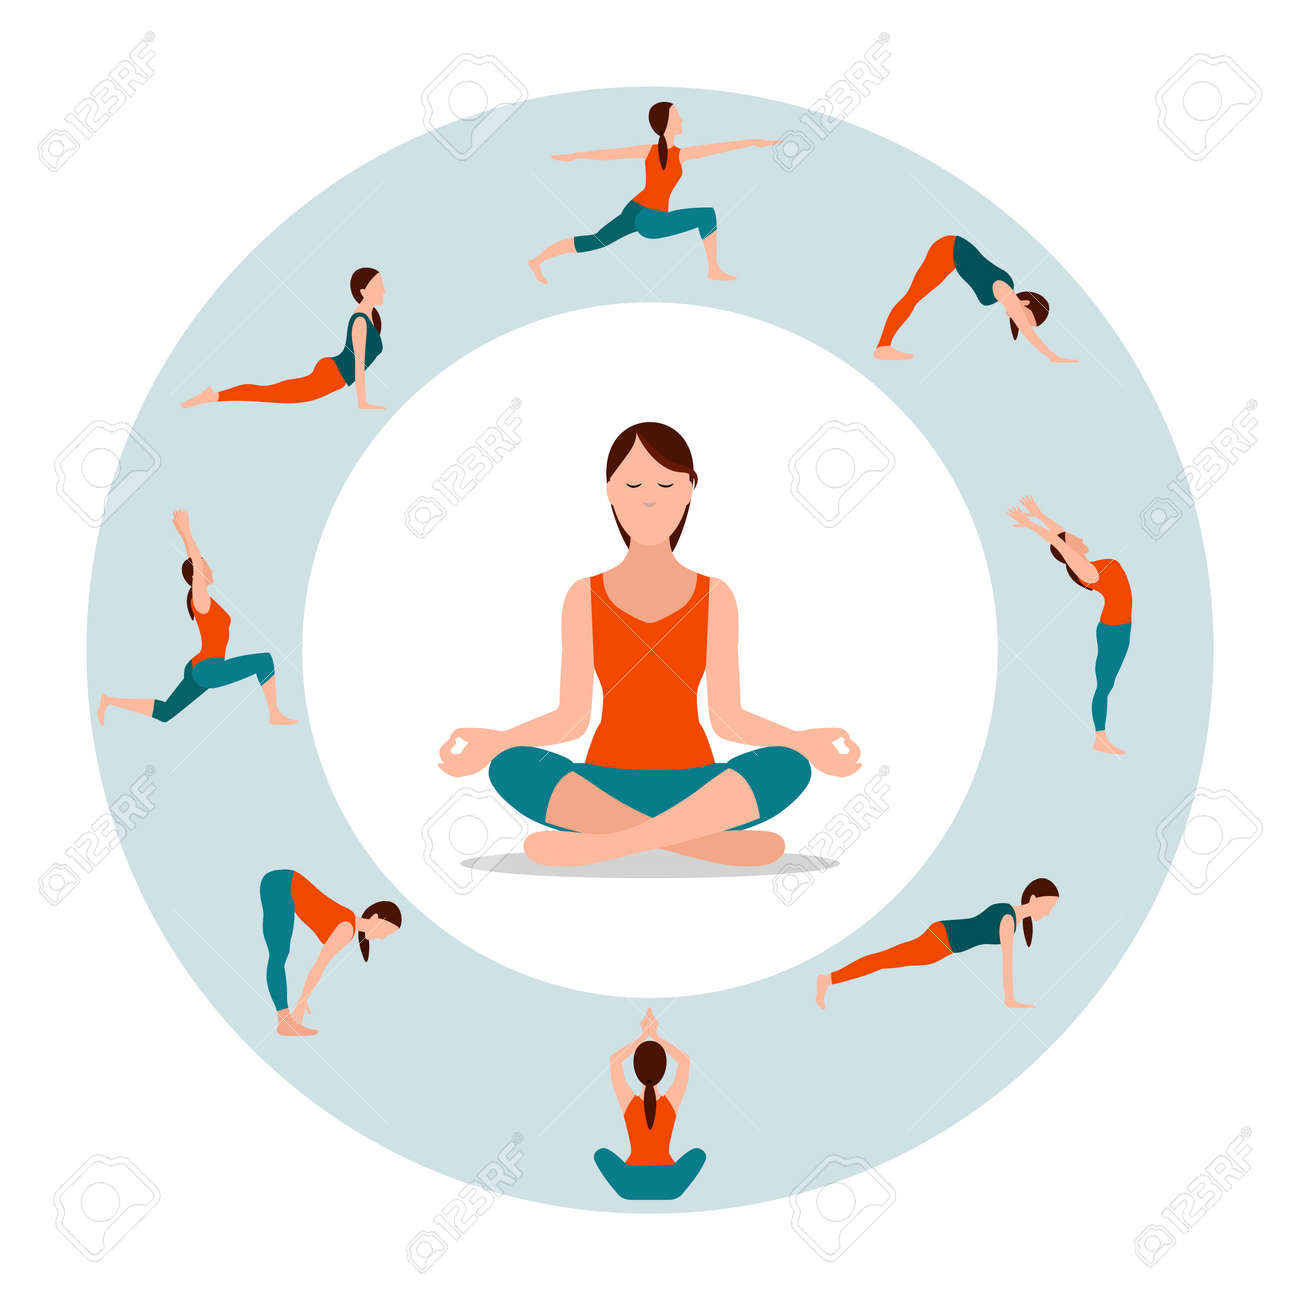 Circle with Female Icons in Different Yoga Poses - 103990256